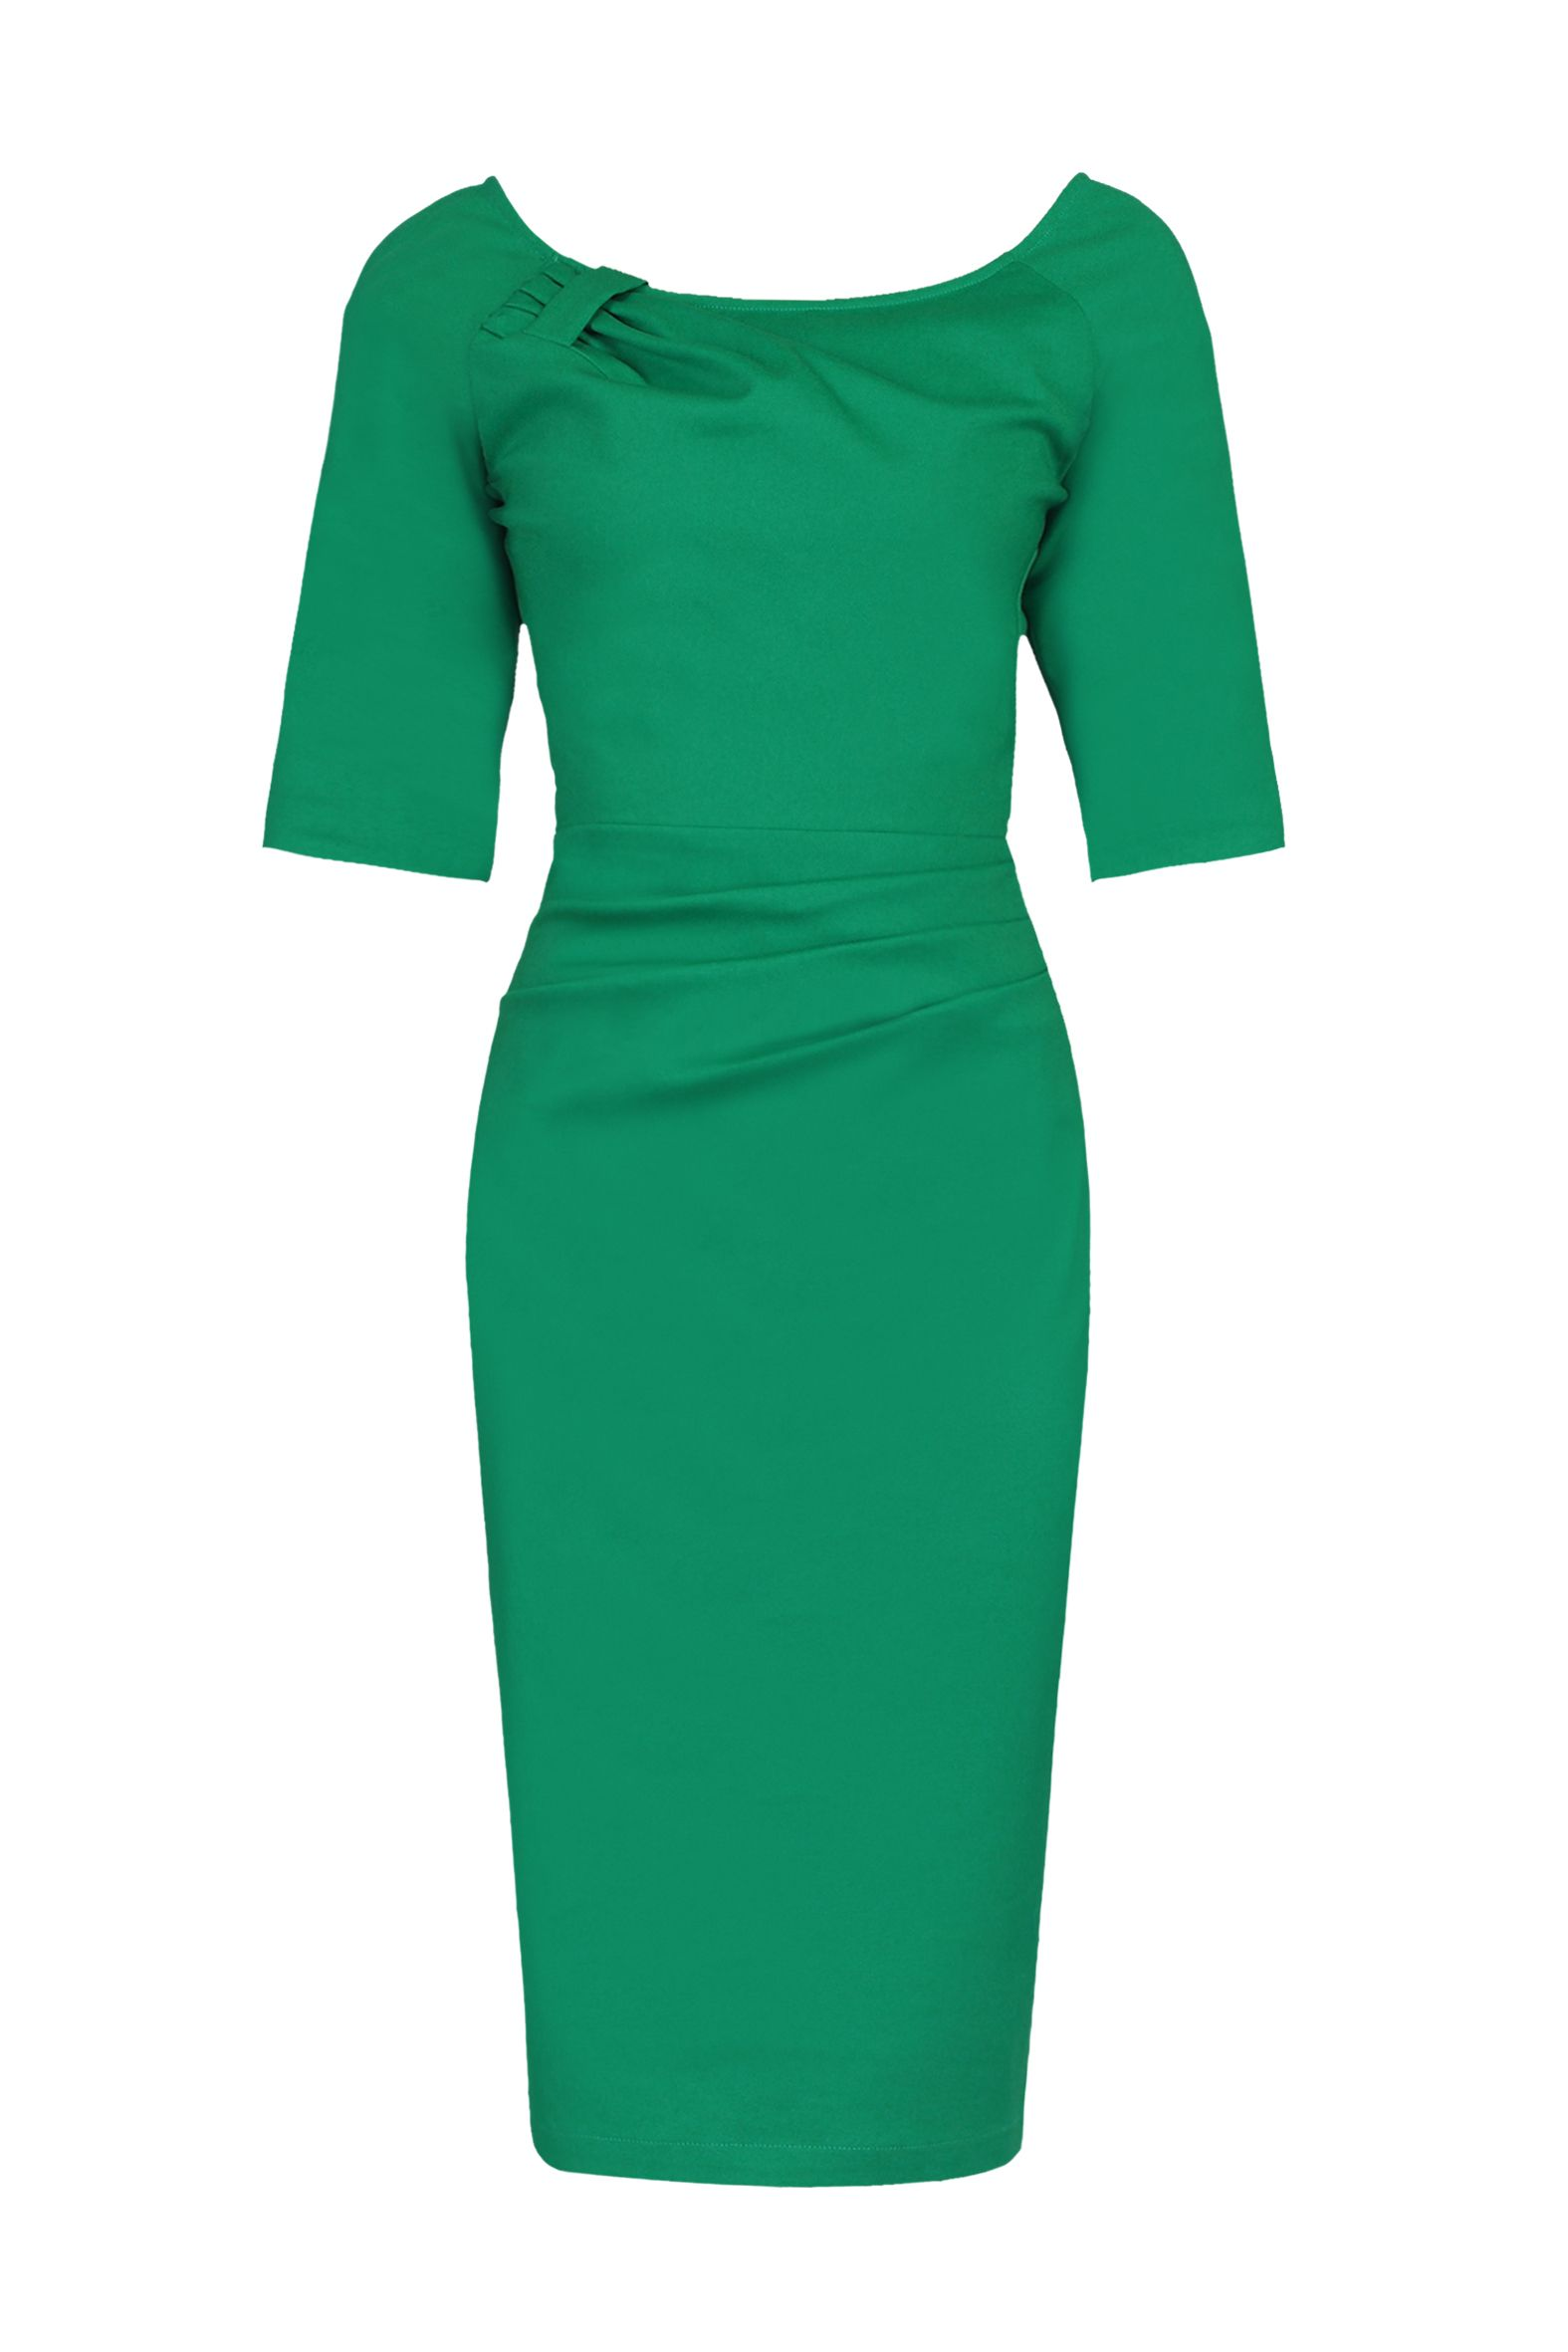 Jolie Moi 1/2 Sleeve Ruched Wiggle Dress, Green